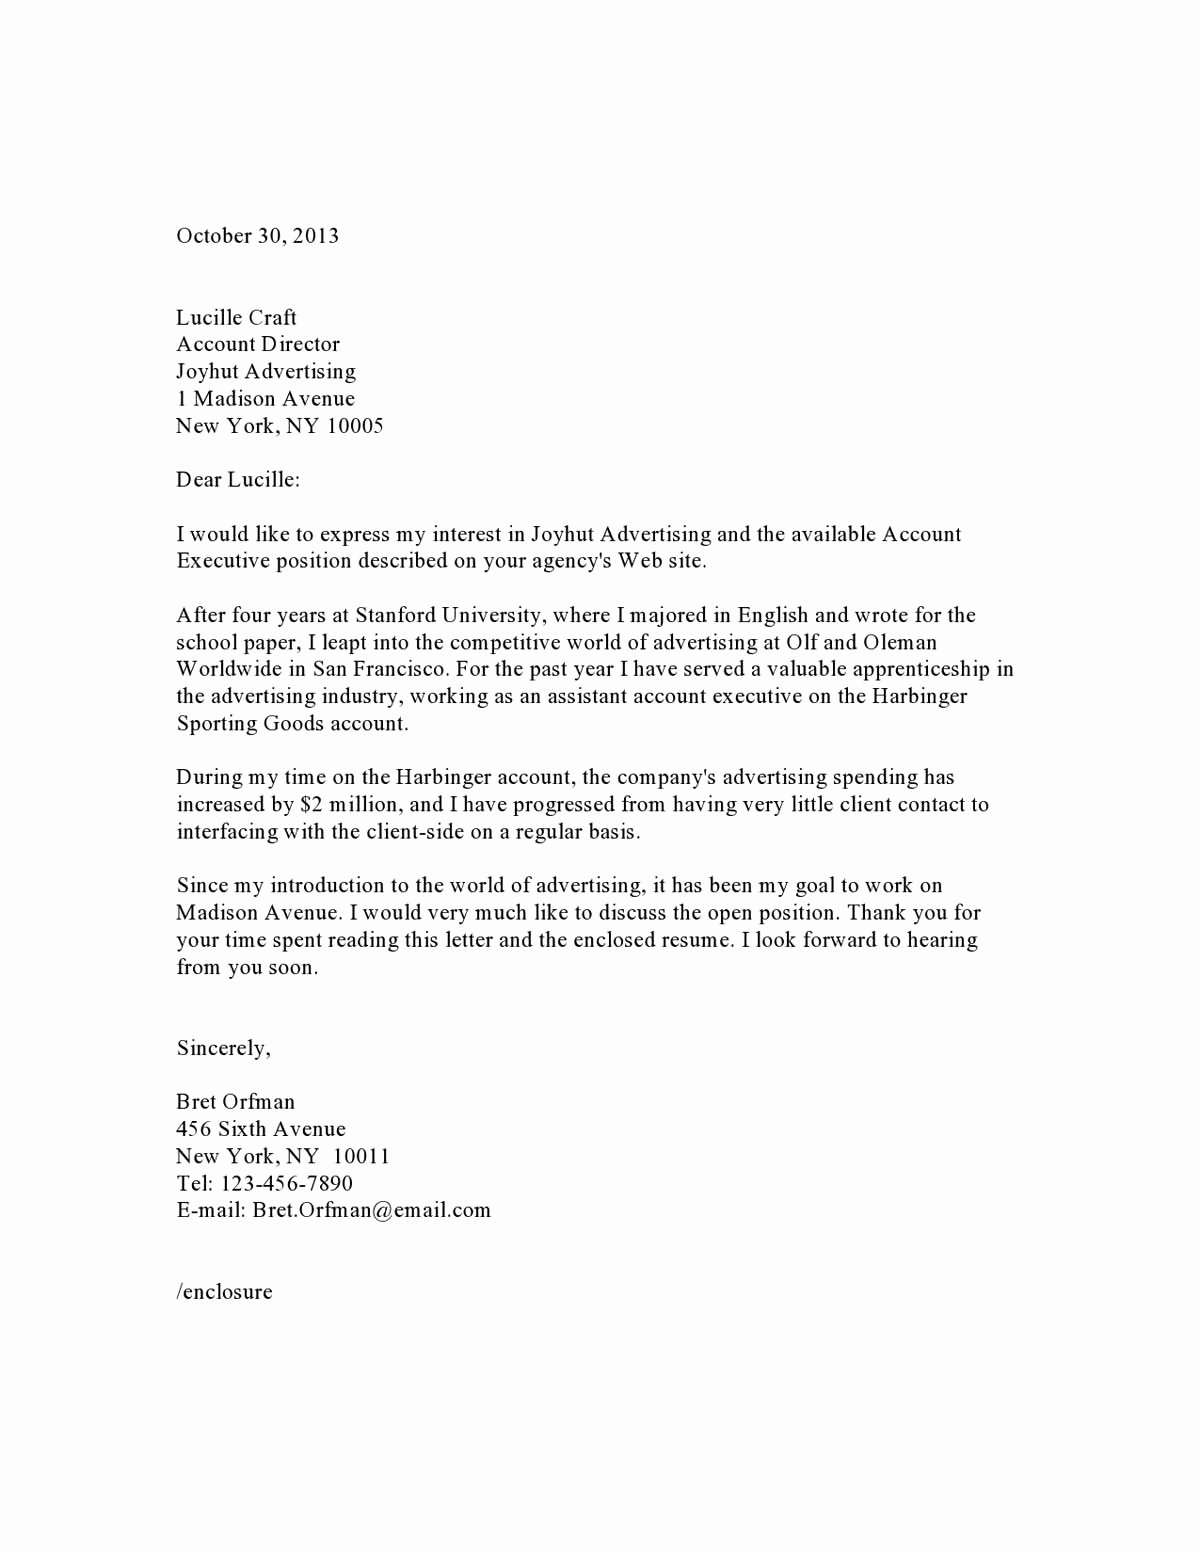 Email Cover Letter Templates Awesome Download Cover Letter Professional Sample Pdf Templates